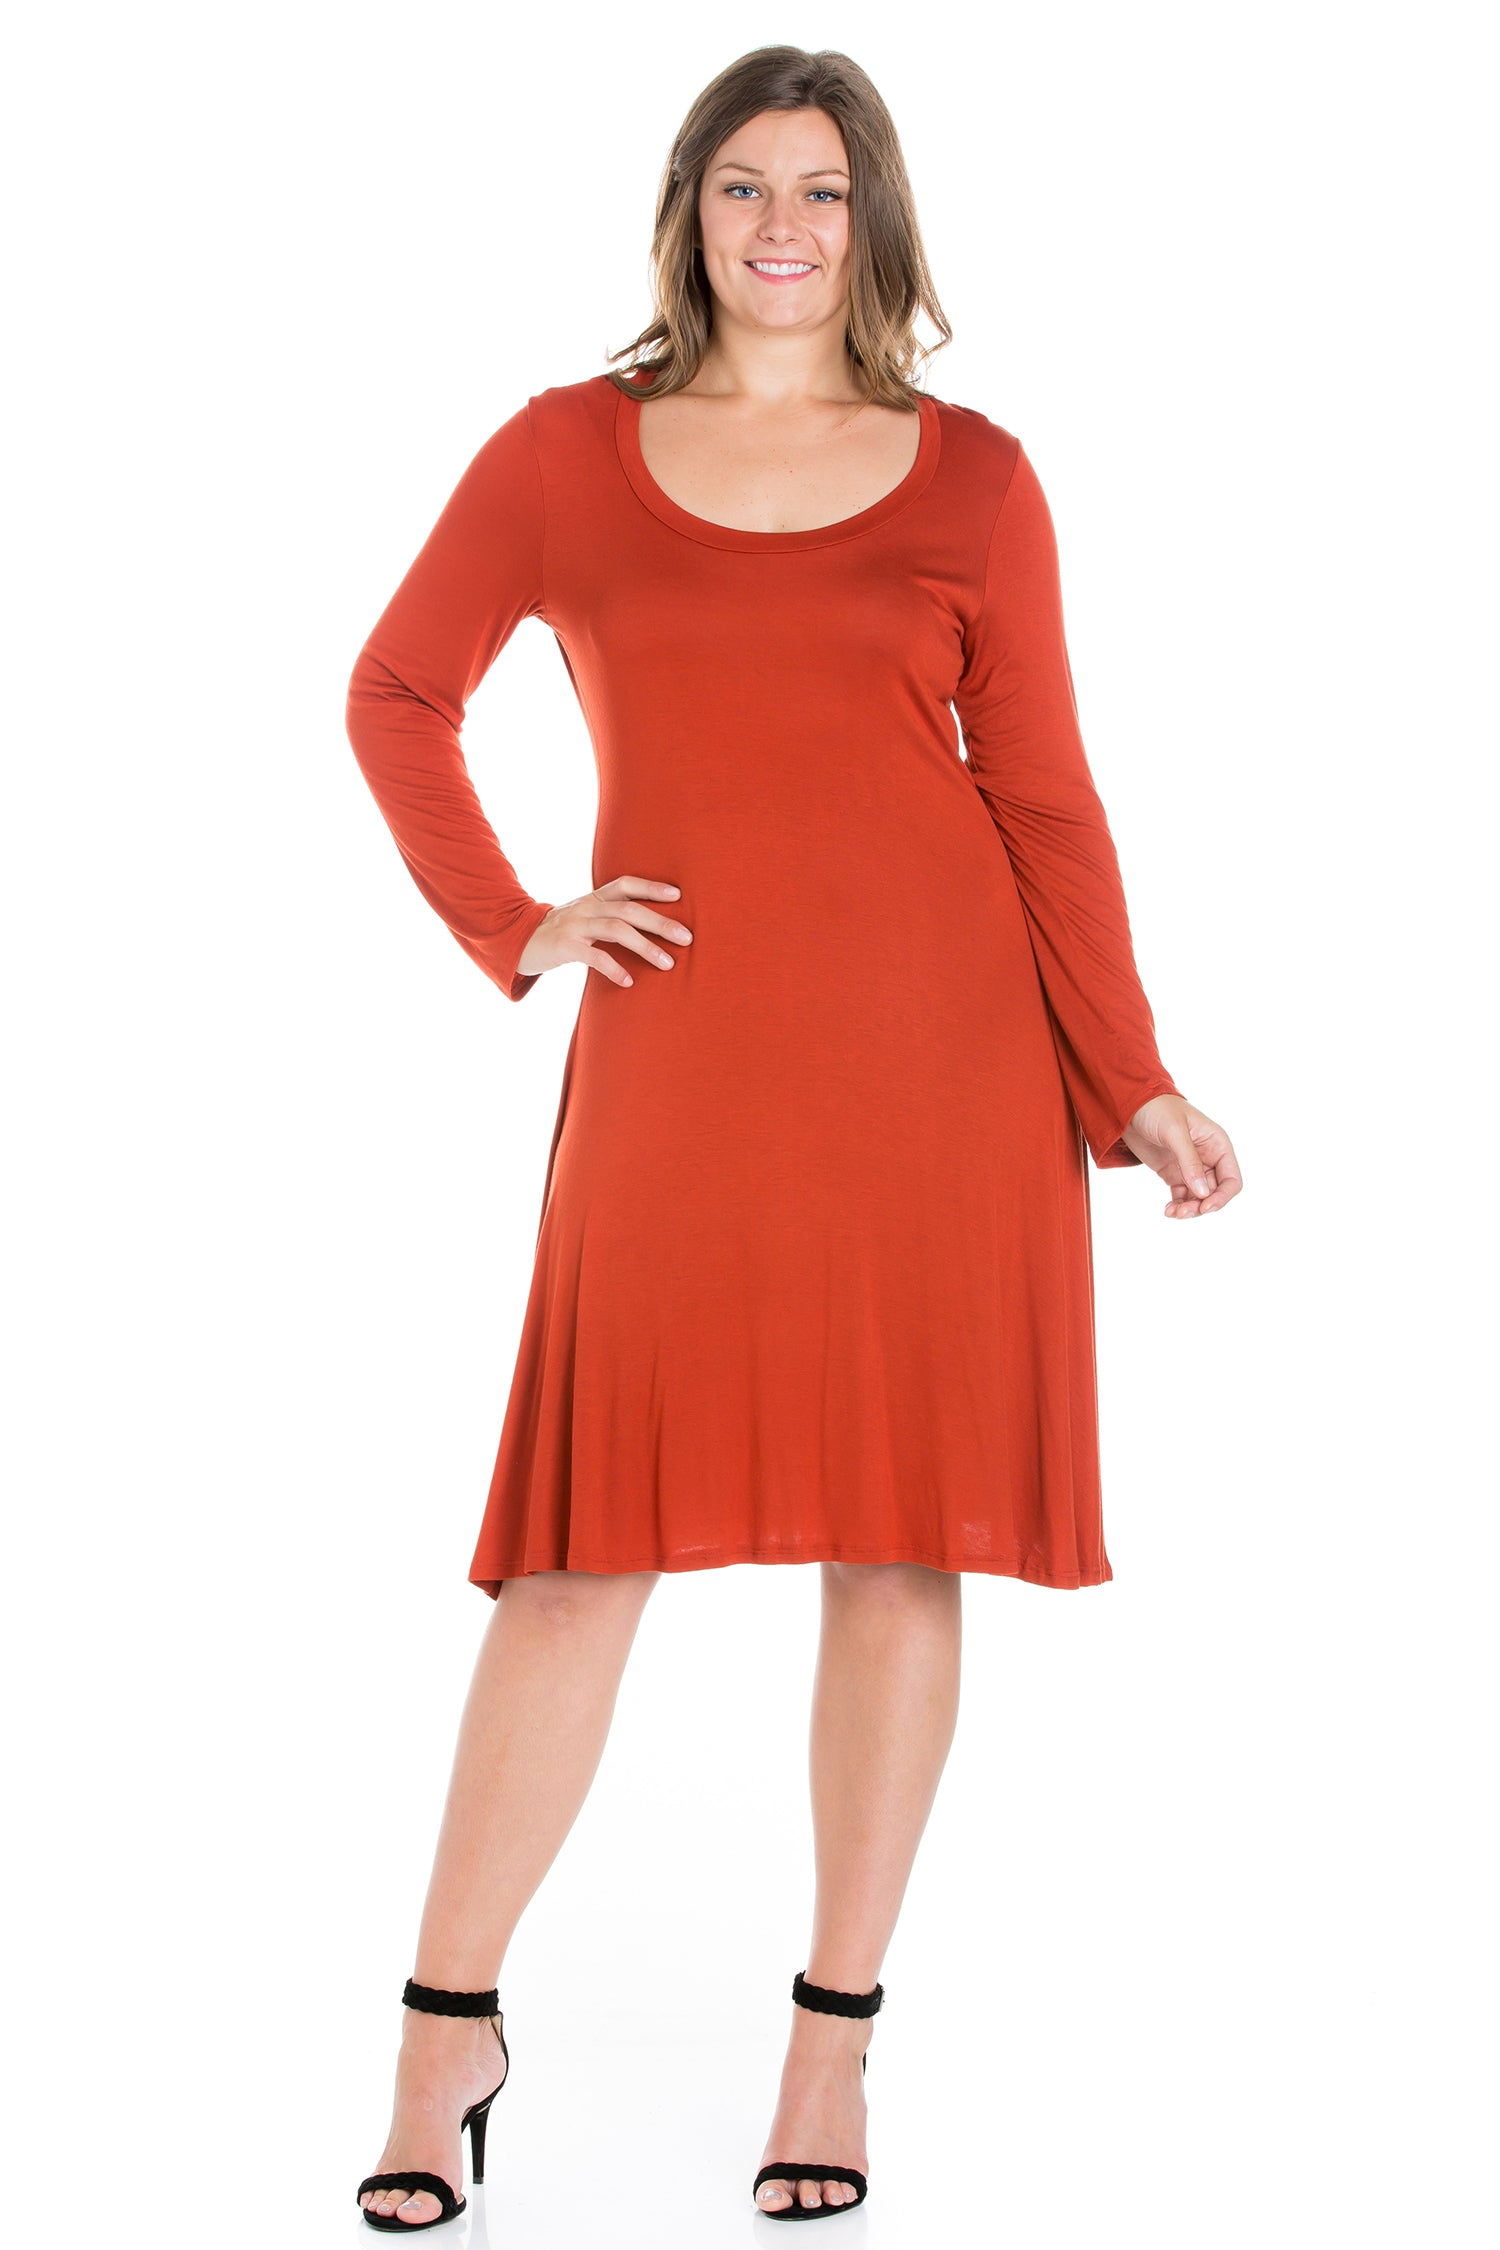 24seven Comfort Apparel Classic Long Sleeve Plus Size Flared Mini Dress-DRESSES-24Seven Comfort Apparel-RUST-1X-24/7 Comfort Apparel